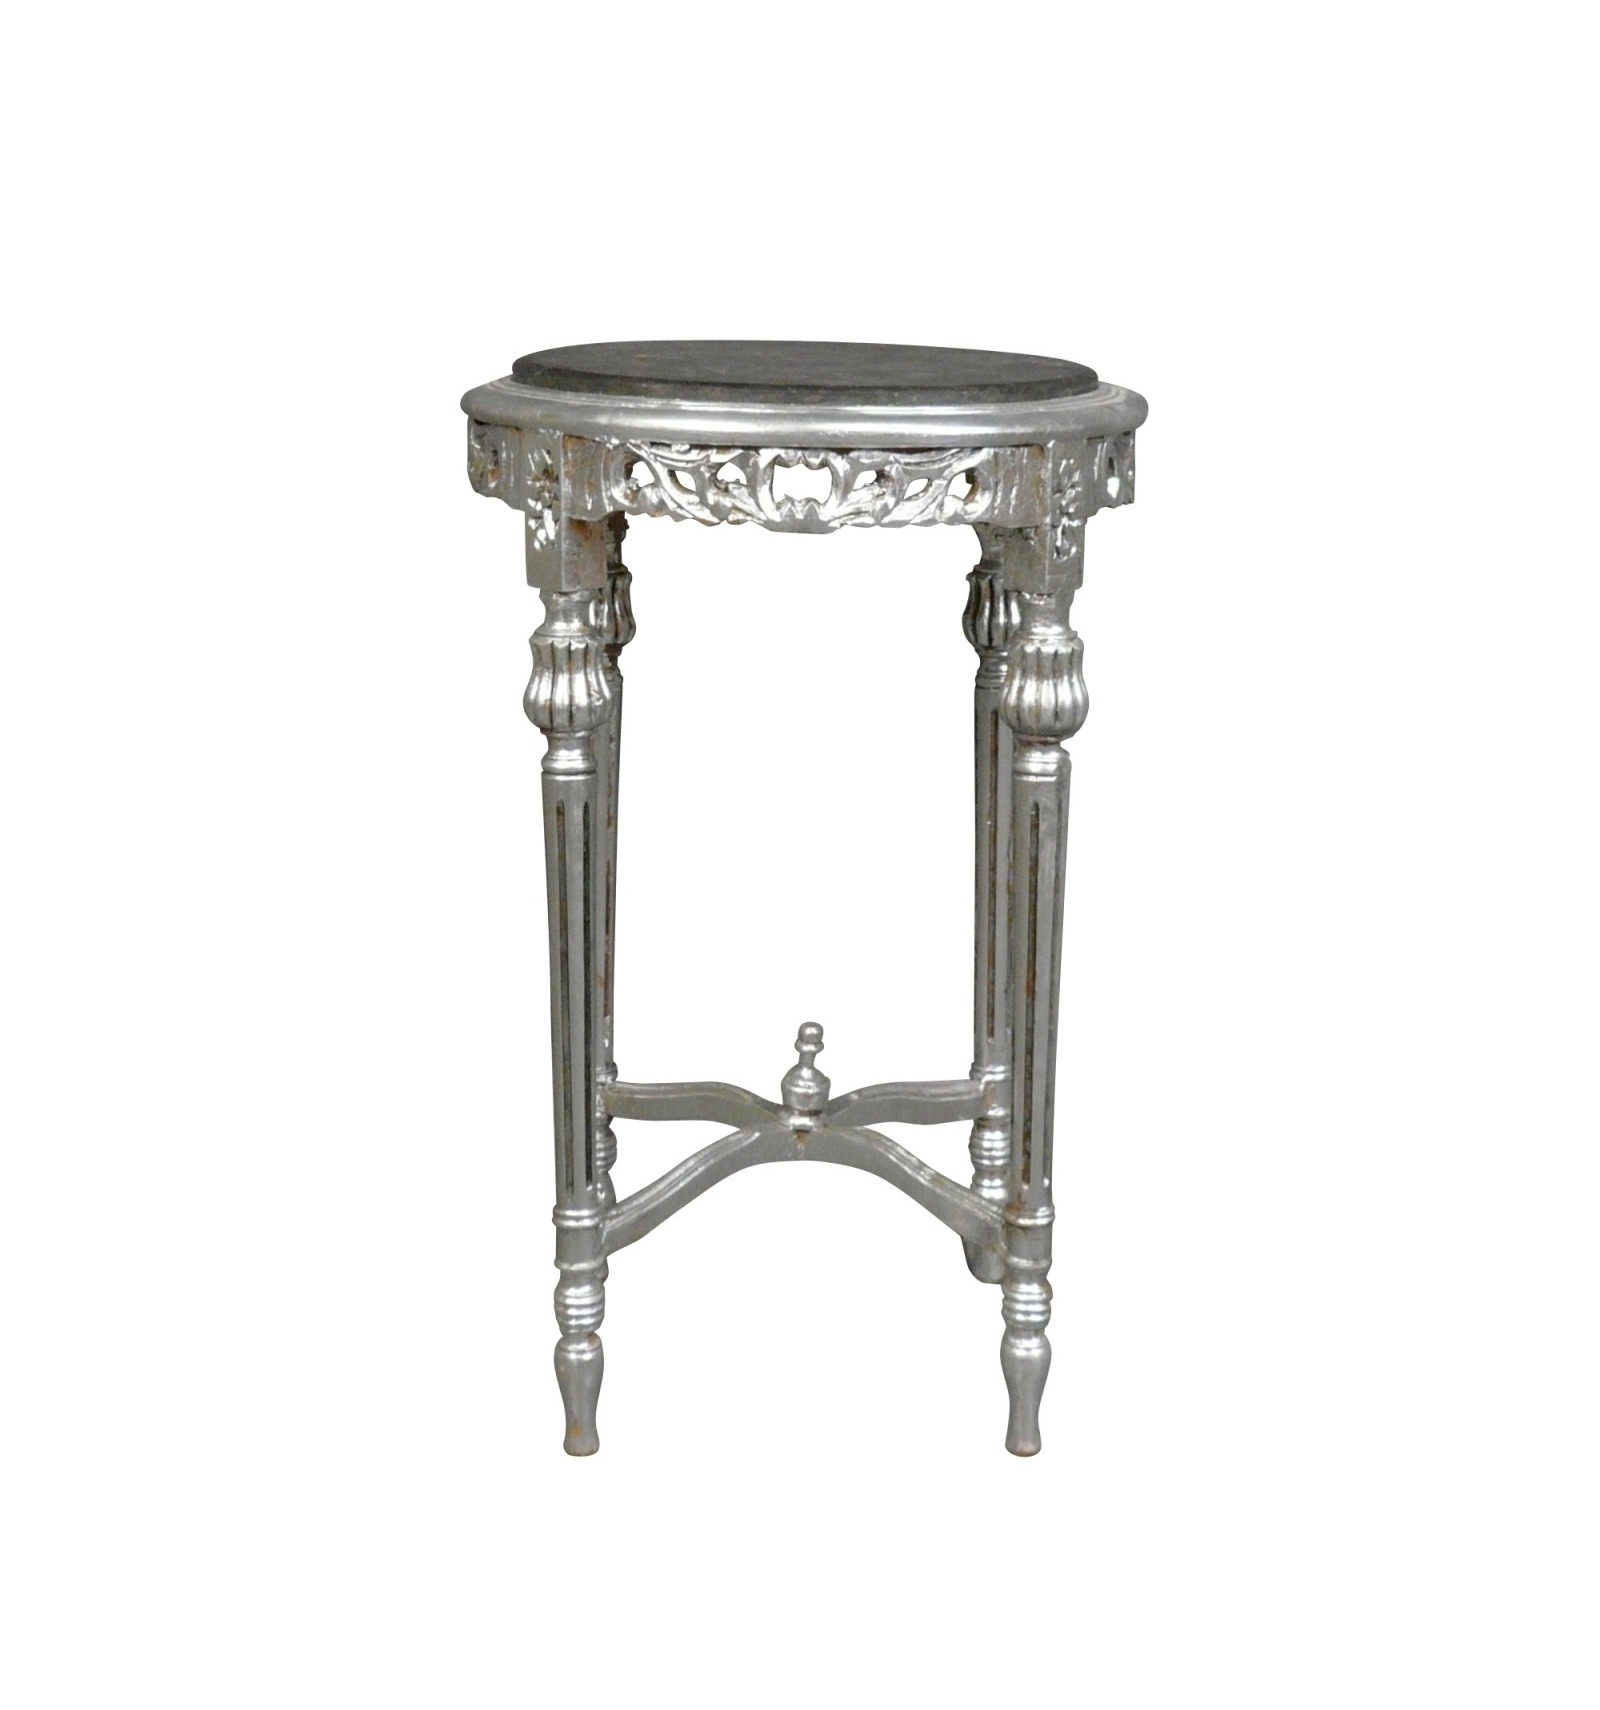 Baroque Silver Plated Black Marble Bolster Rococo Table